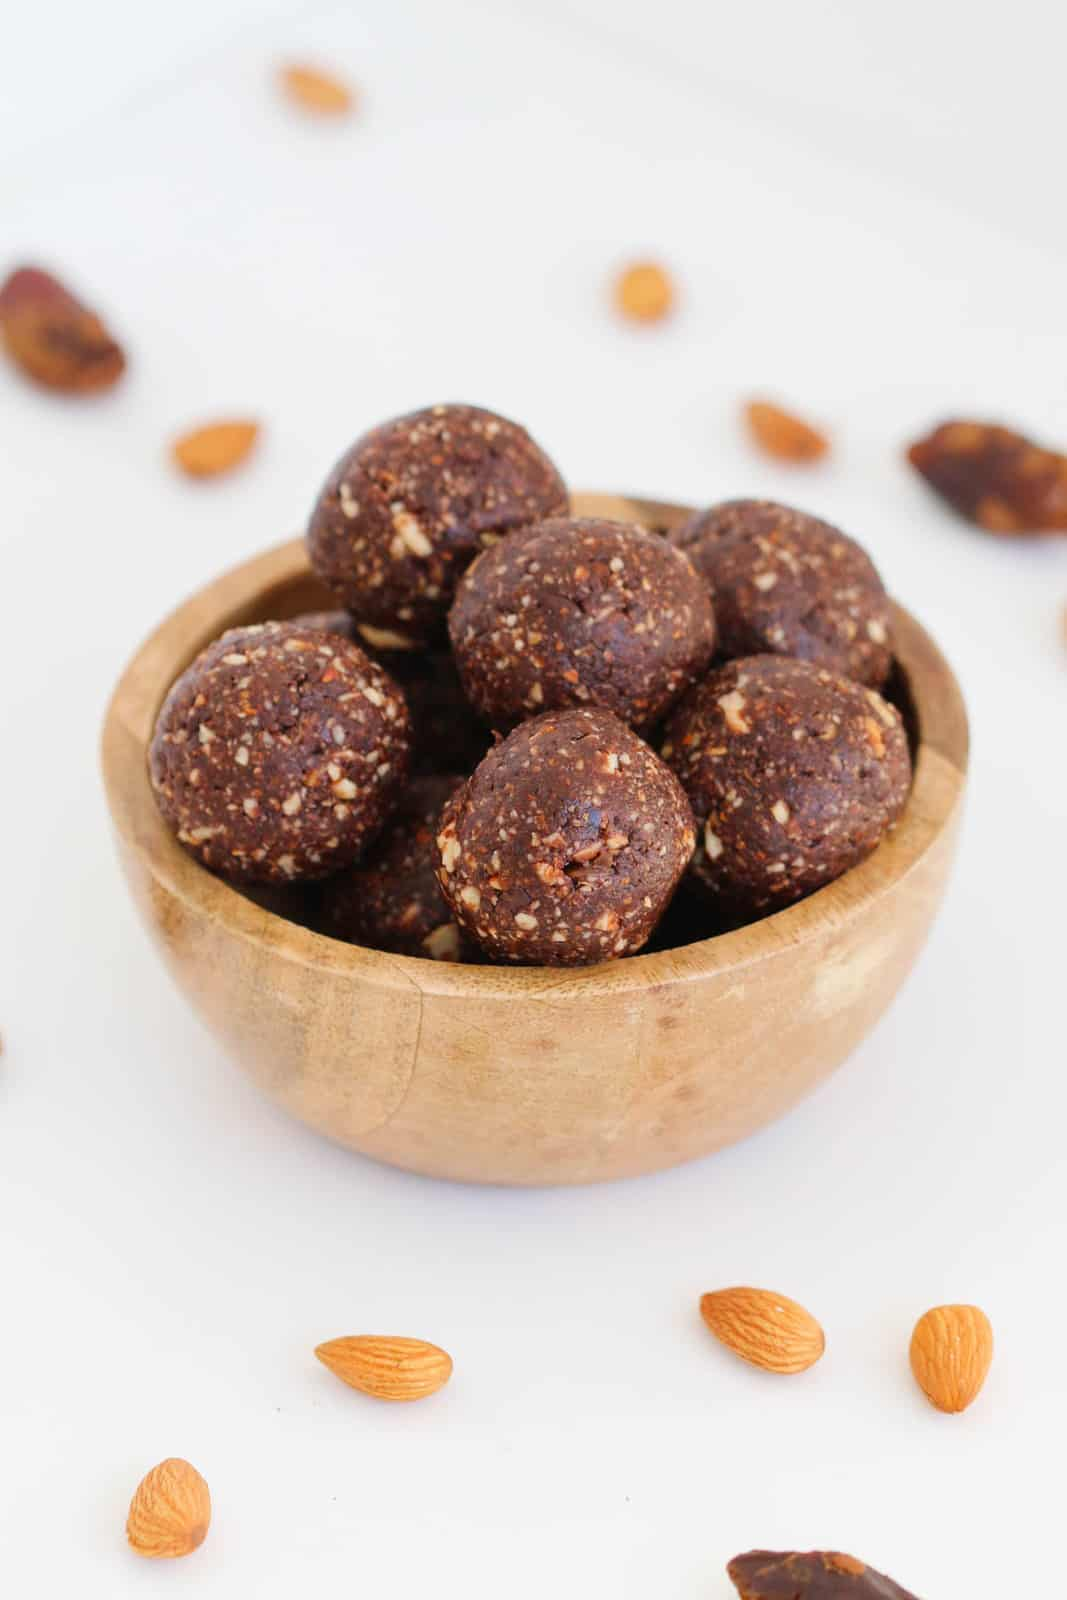 Almond, date and chocolate protein balls in a wooden bowl on a white bench.